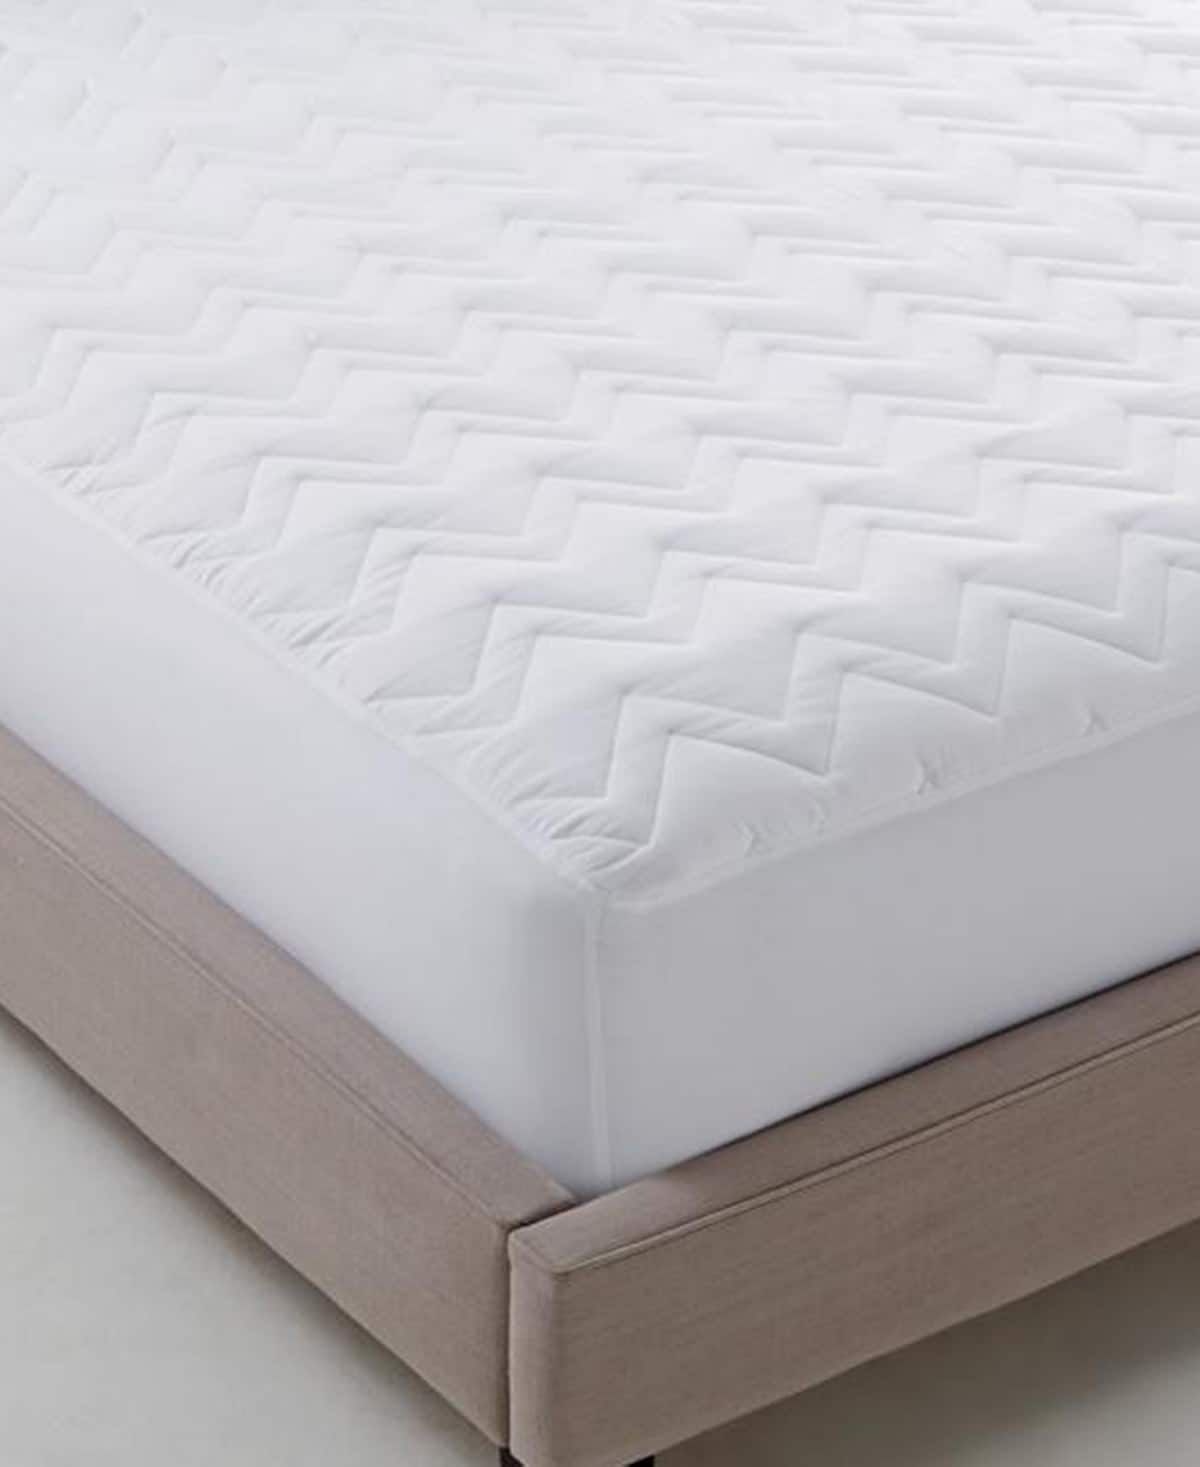 Martha Stewart Essentials Classic Quilted Twin or Twin XL Mattress Pad $10 + free store pickup at Macys